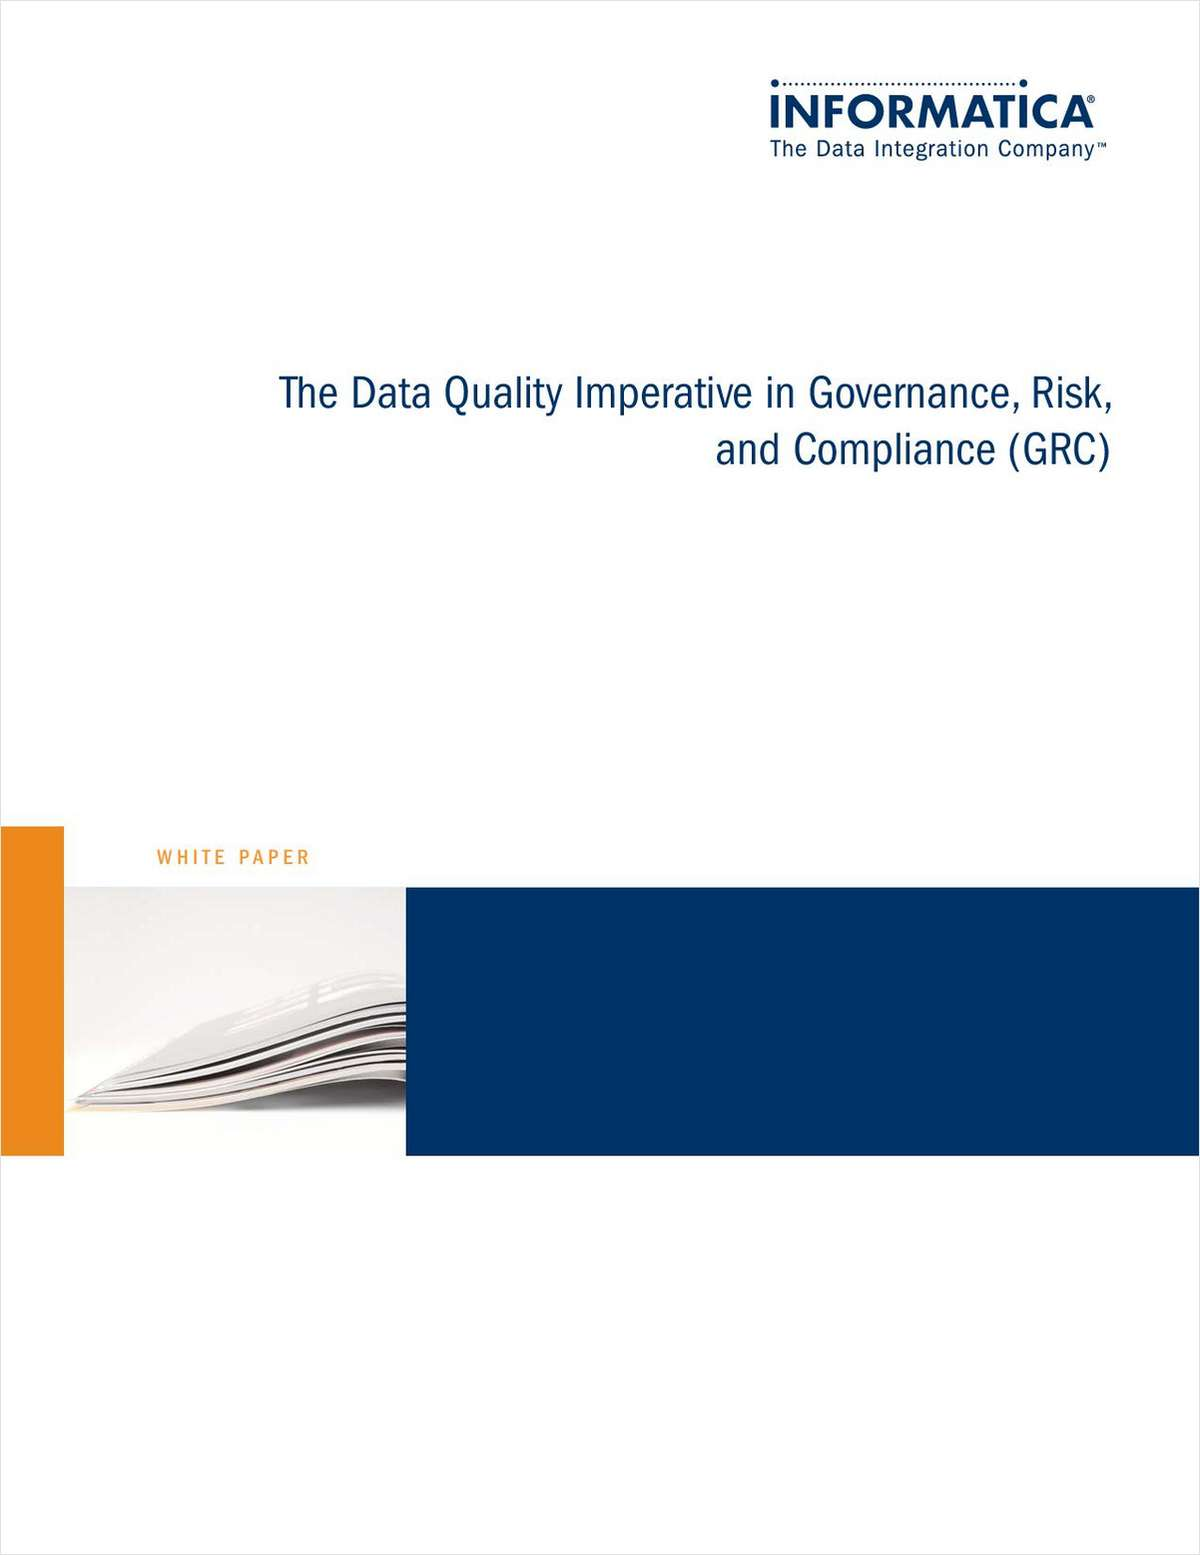 The Data Quality Imperative in Governance, Risk and Compliance